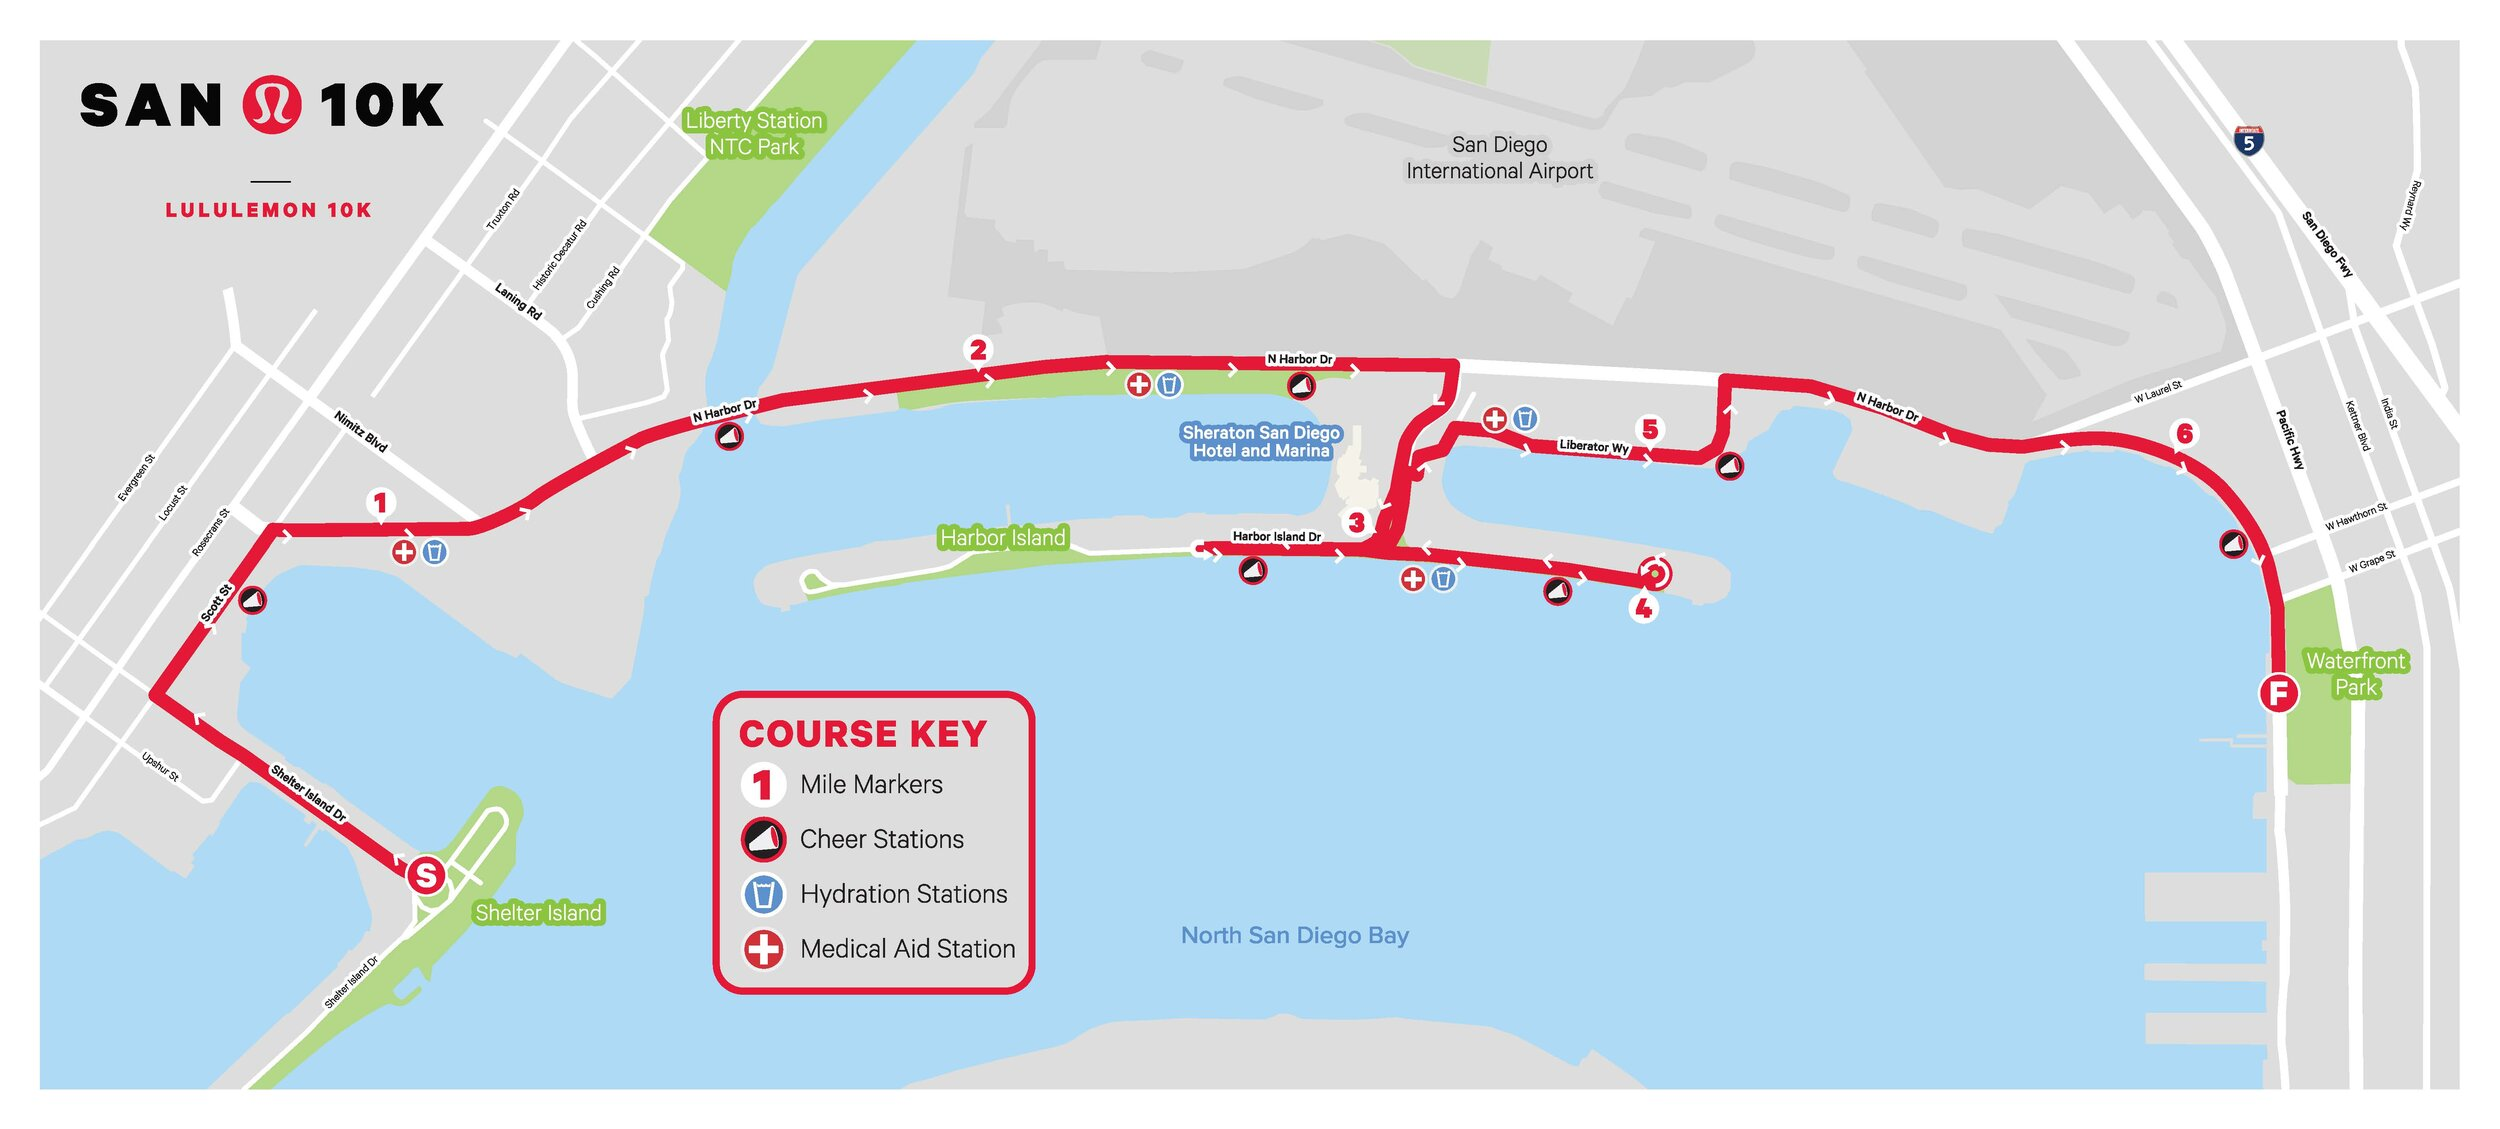 Lululemon 10K Course Map.jpg